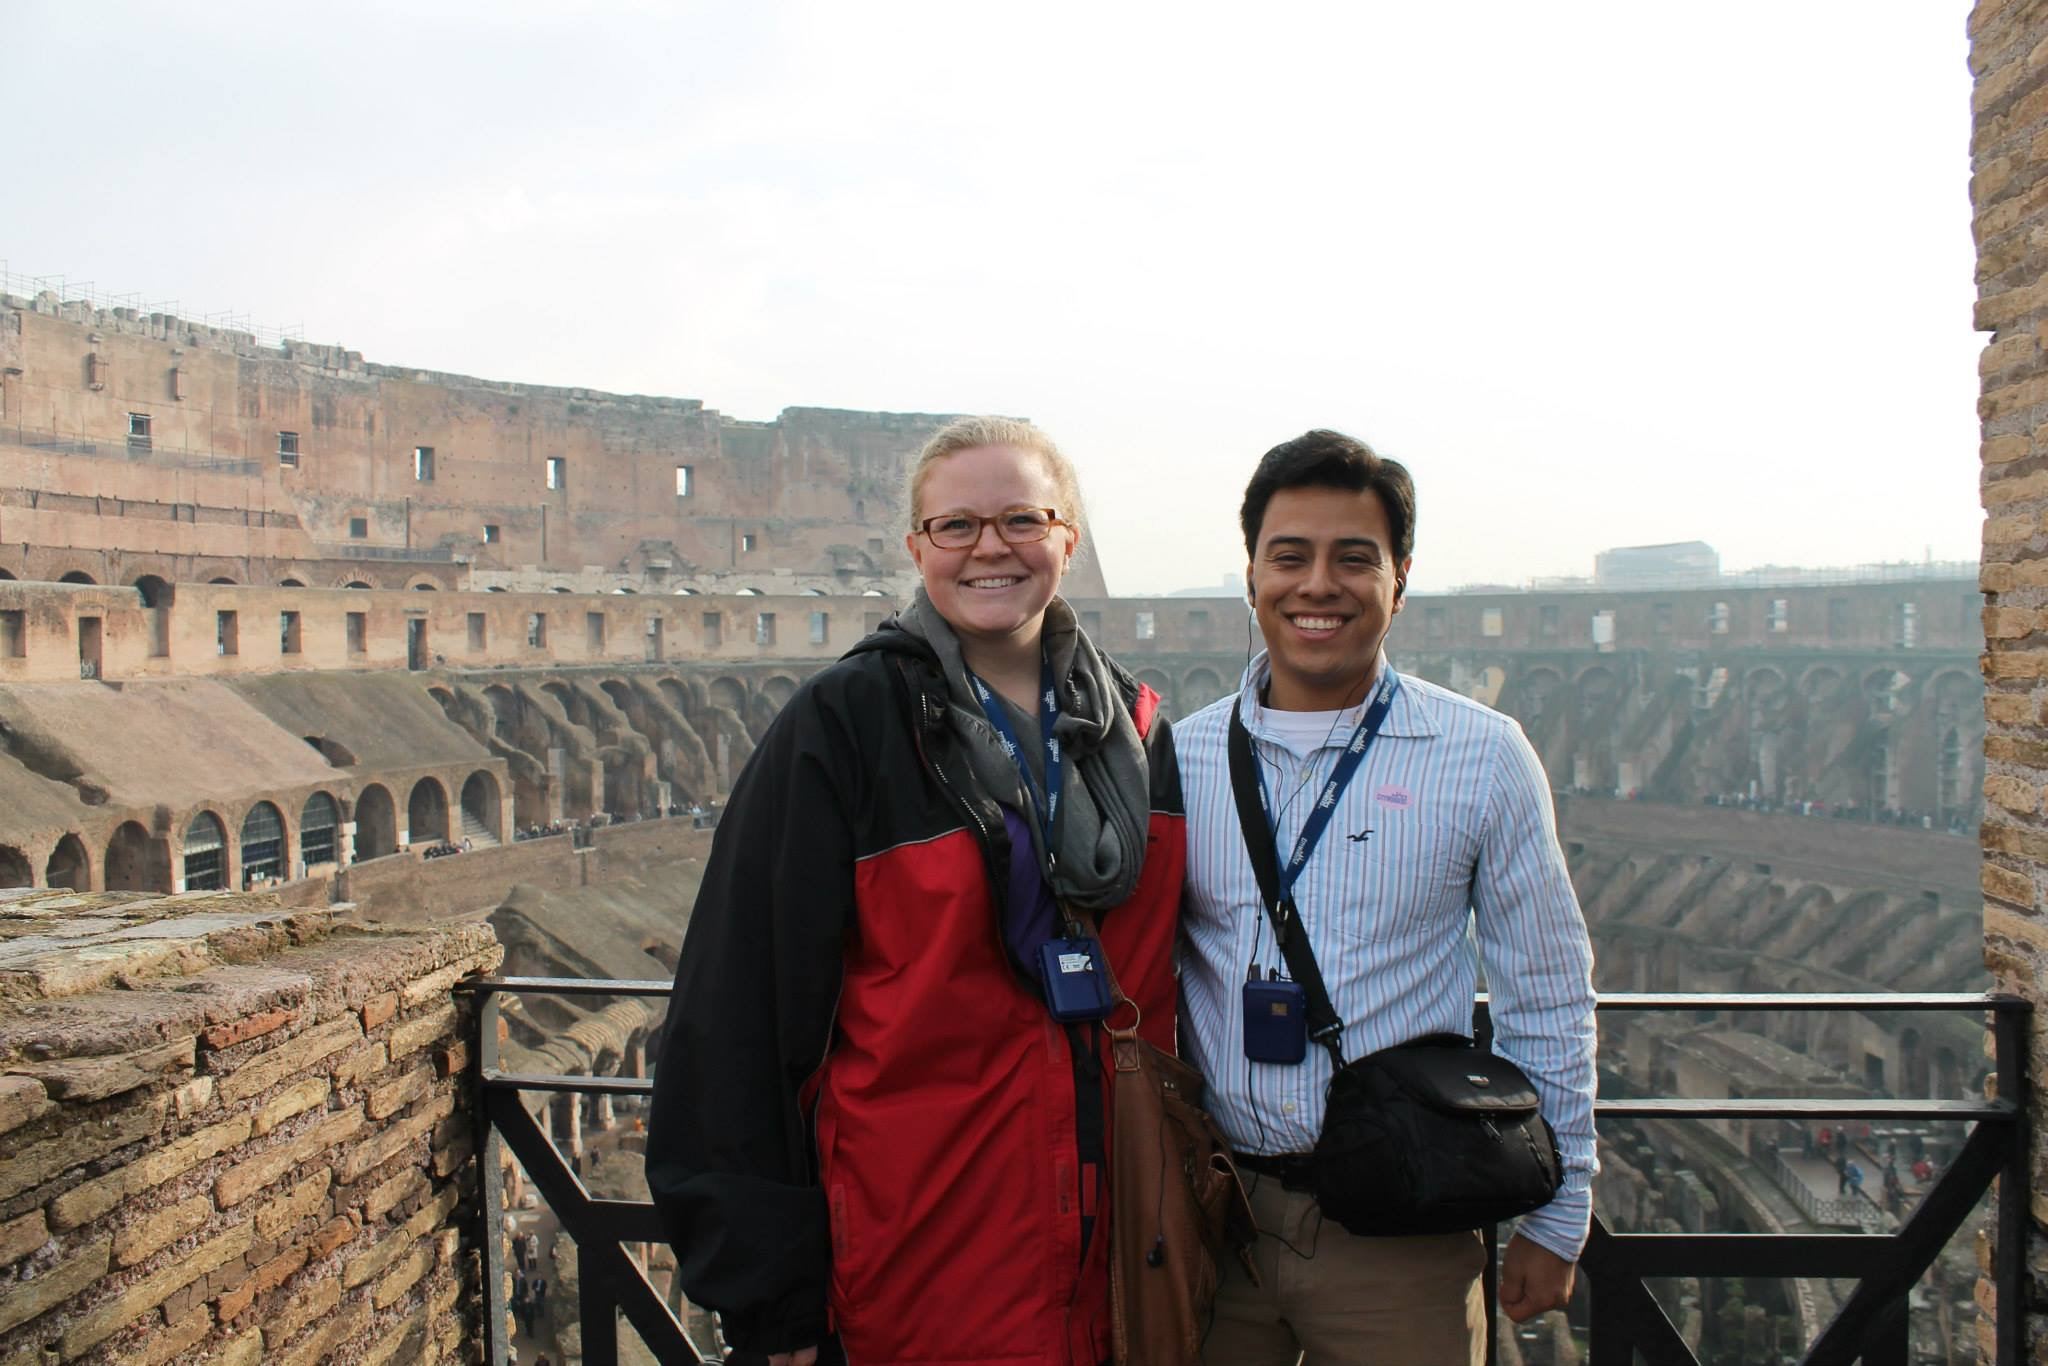 At the Colosseum in Rome on our honeymoon.